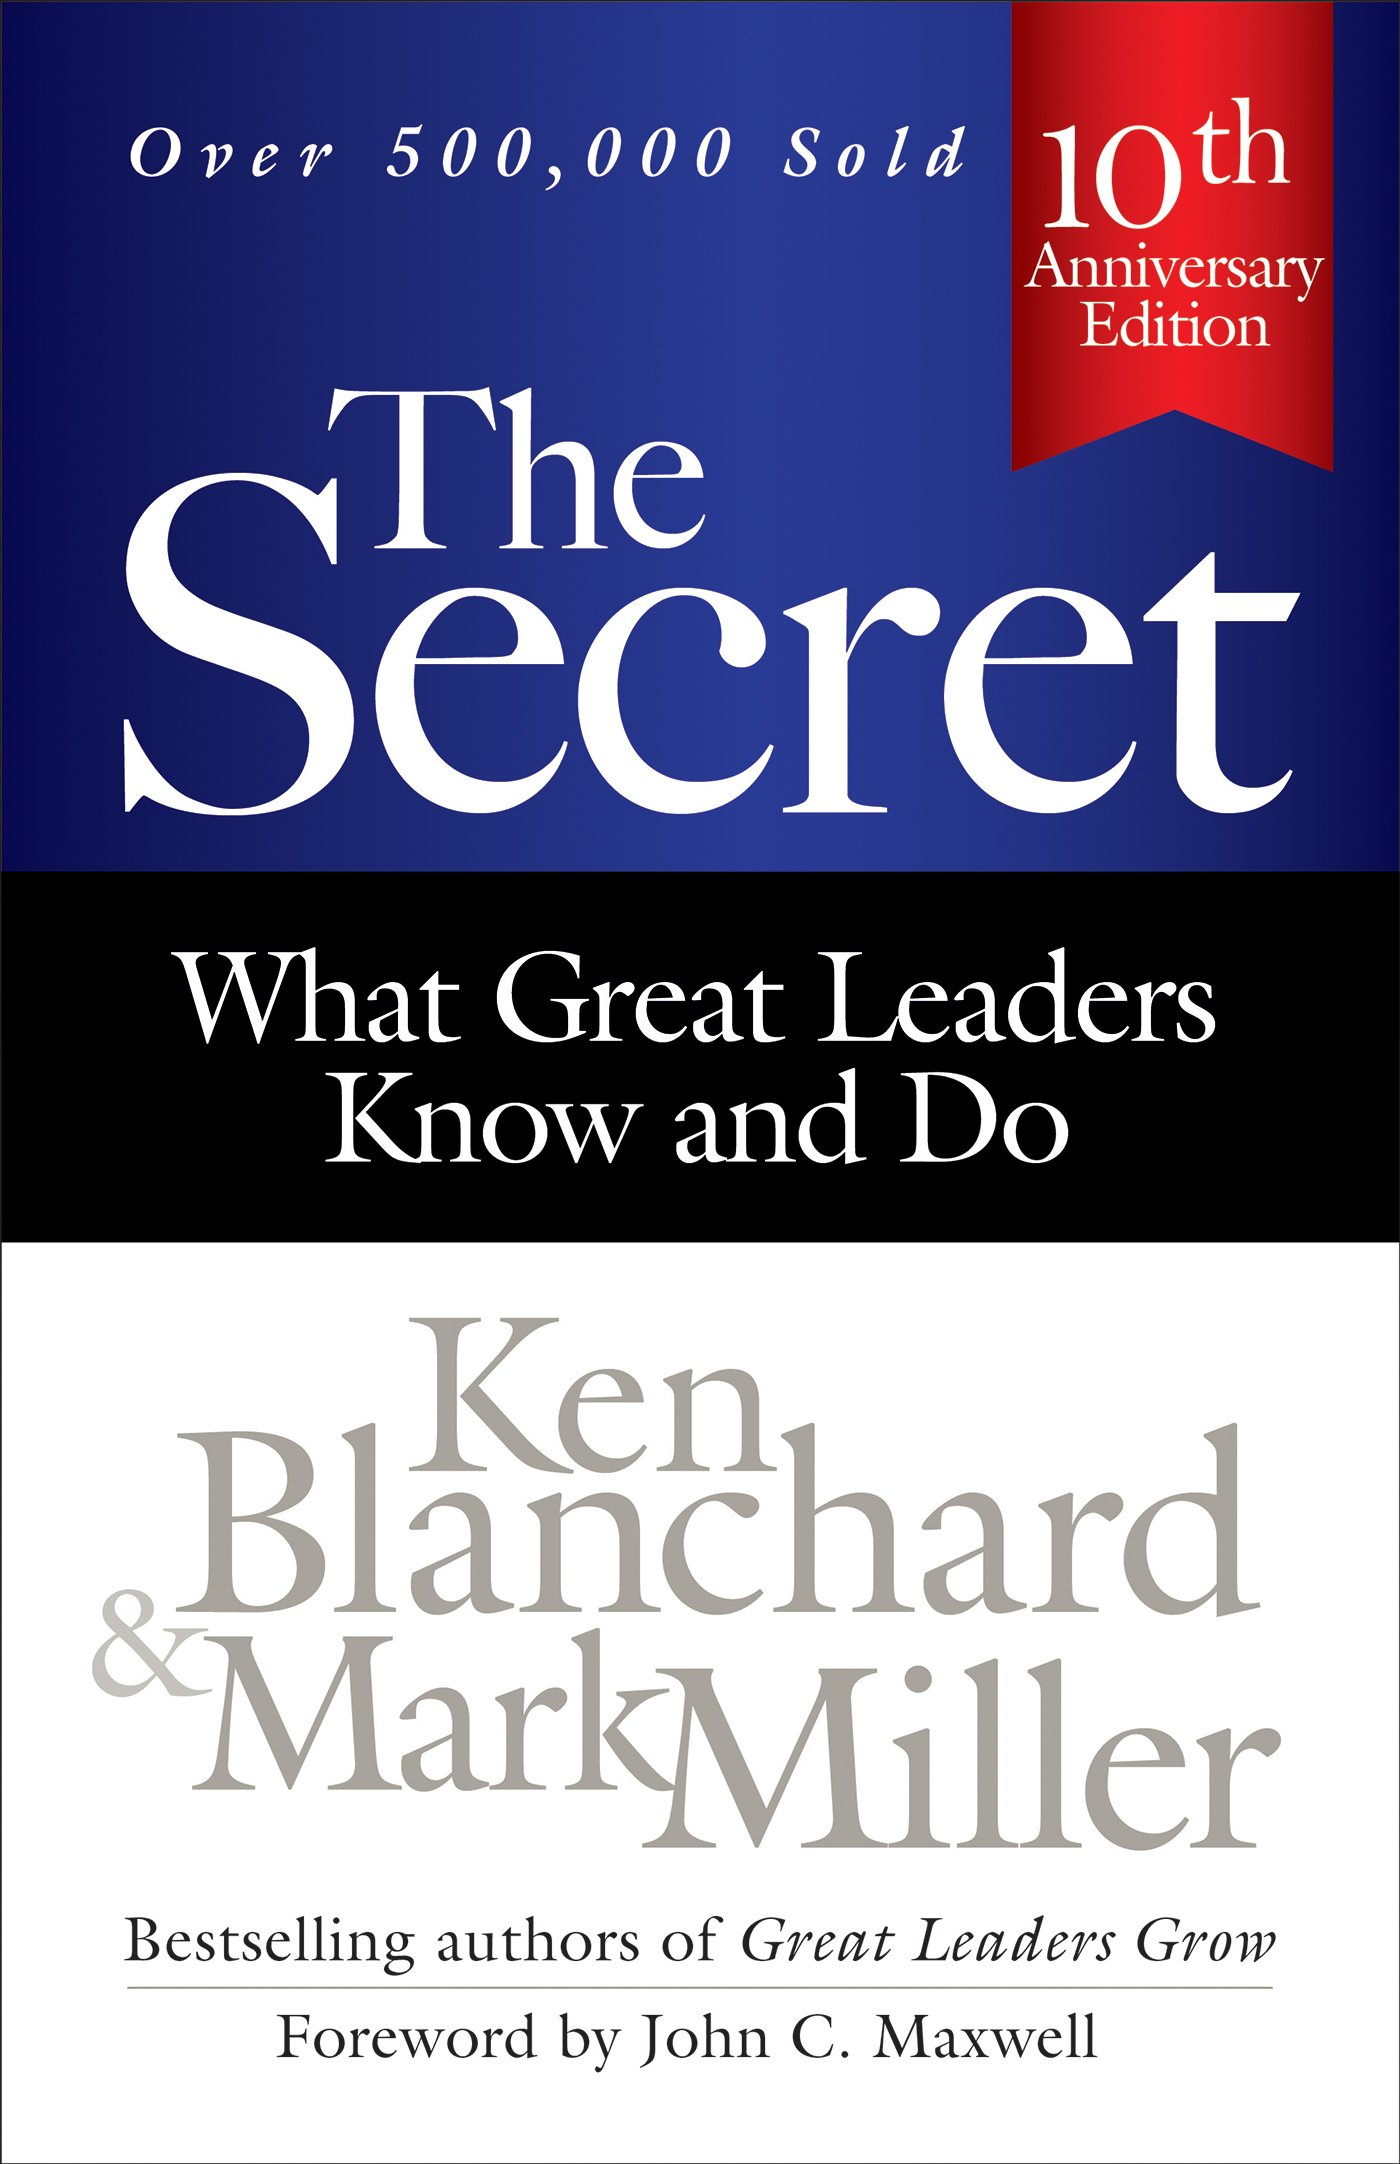 Servant Leadership Quotes Simple 20 Quotes On Servant Leadership From The Secretken Blanchard